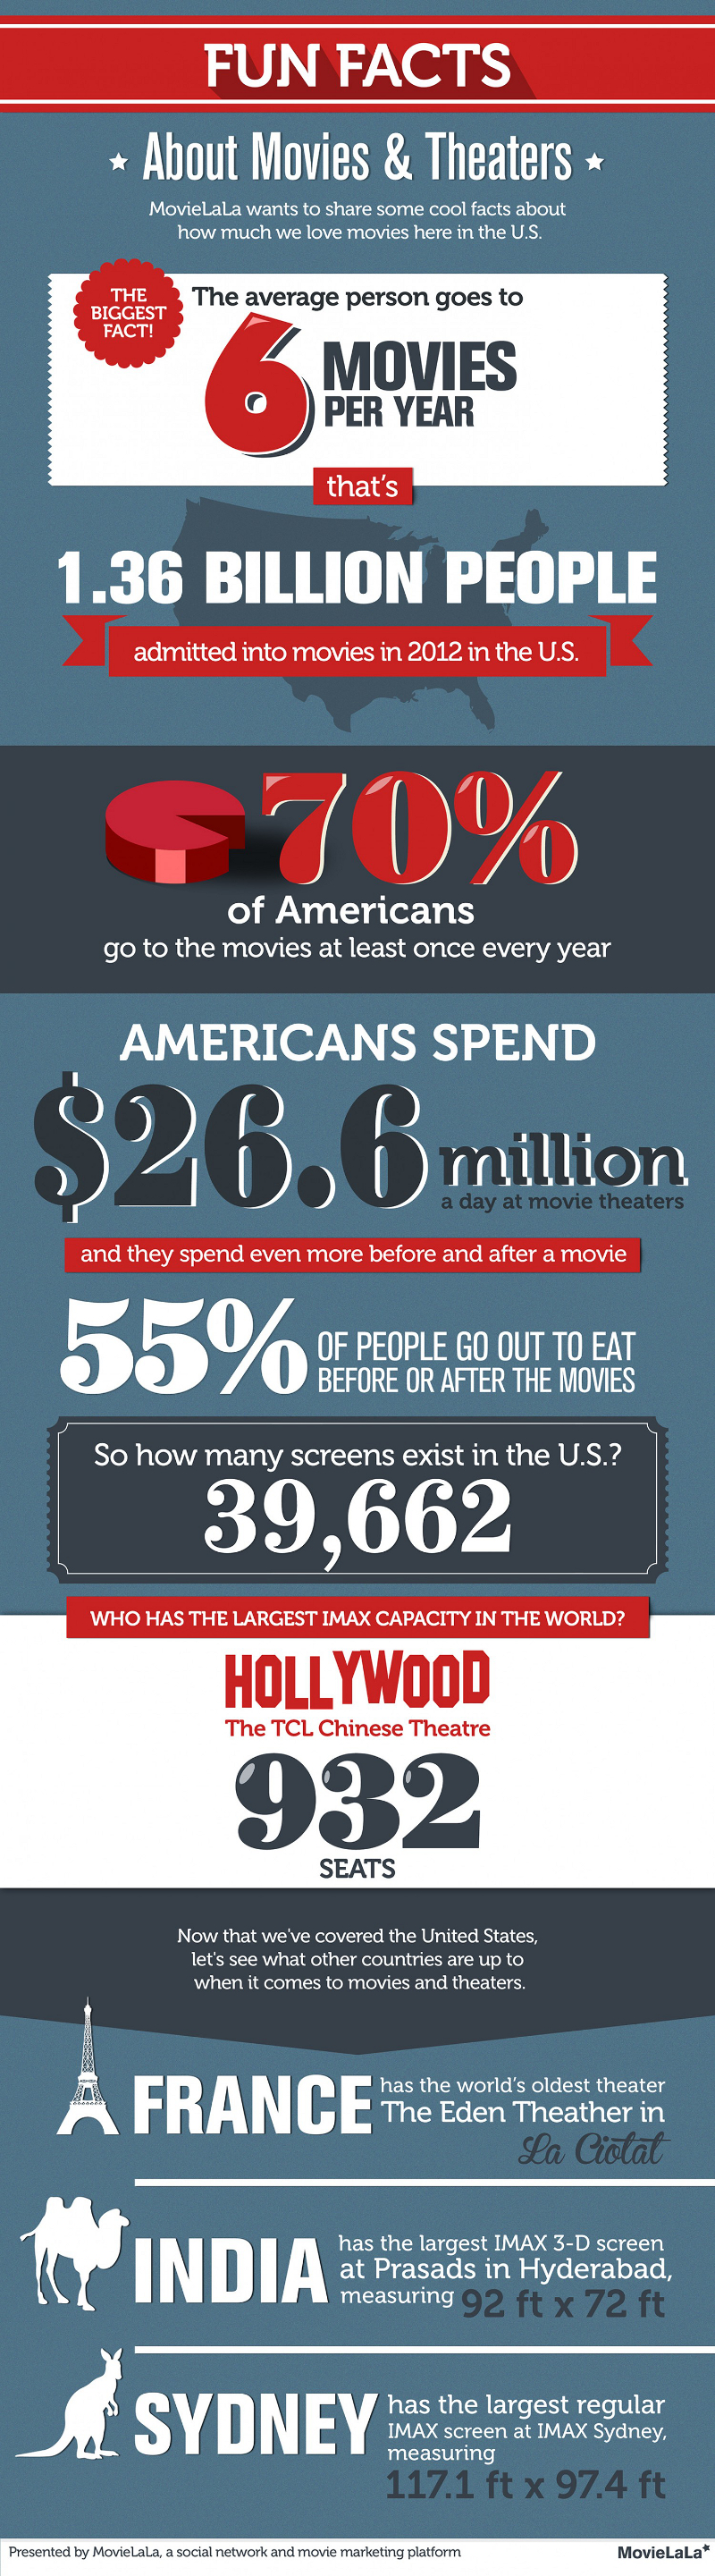 Movie Theater Facts and Statistics